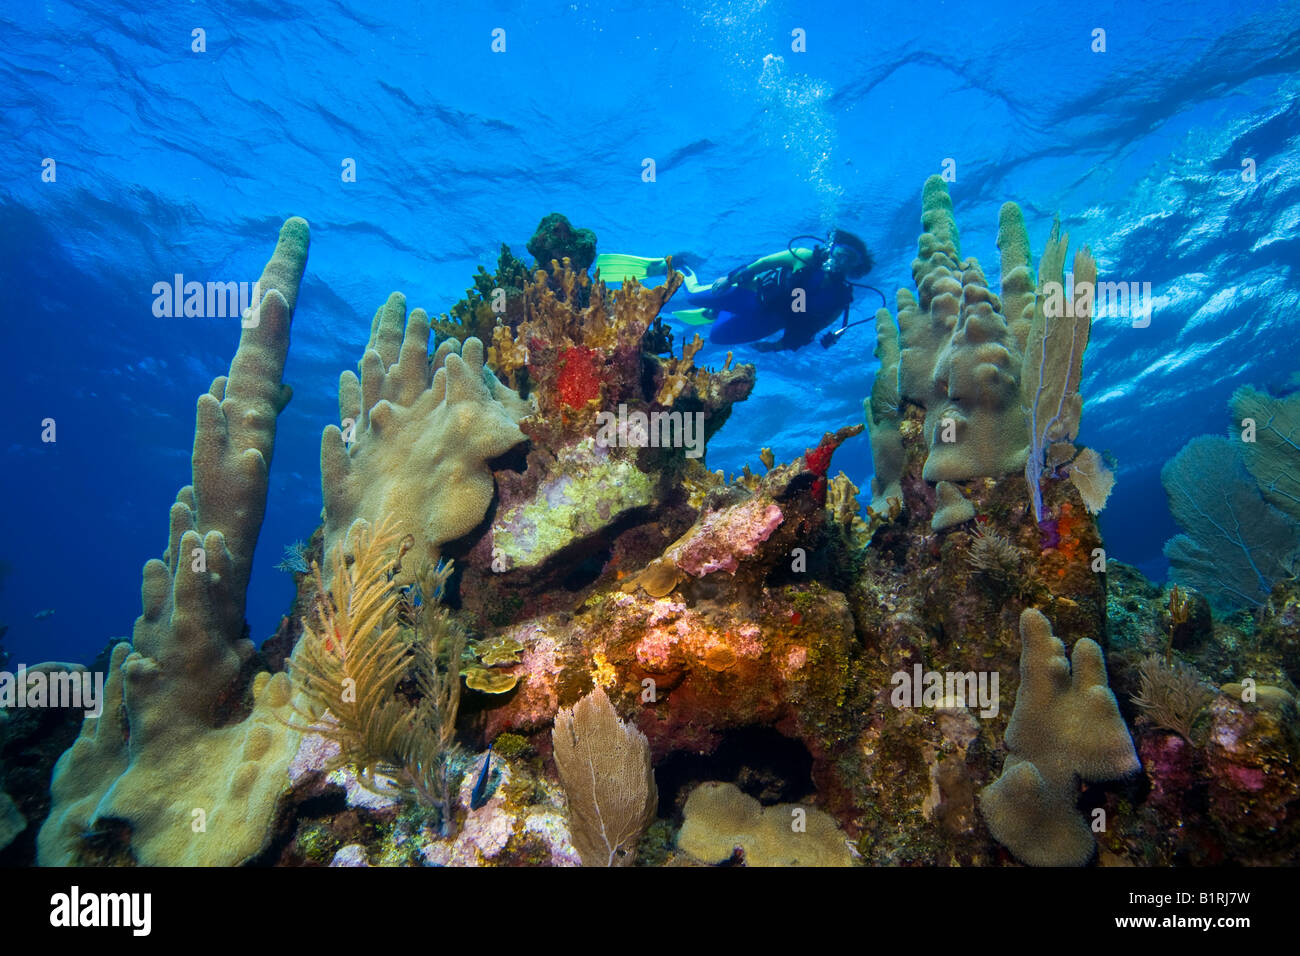 Scuba diver in shallow water, coral reef, Caribbean, Roatan, Honduras, Central America - Stock Image